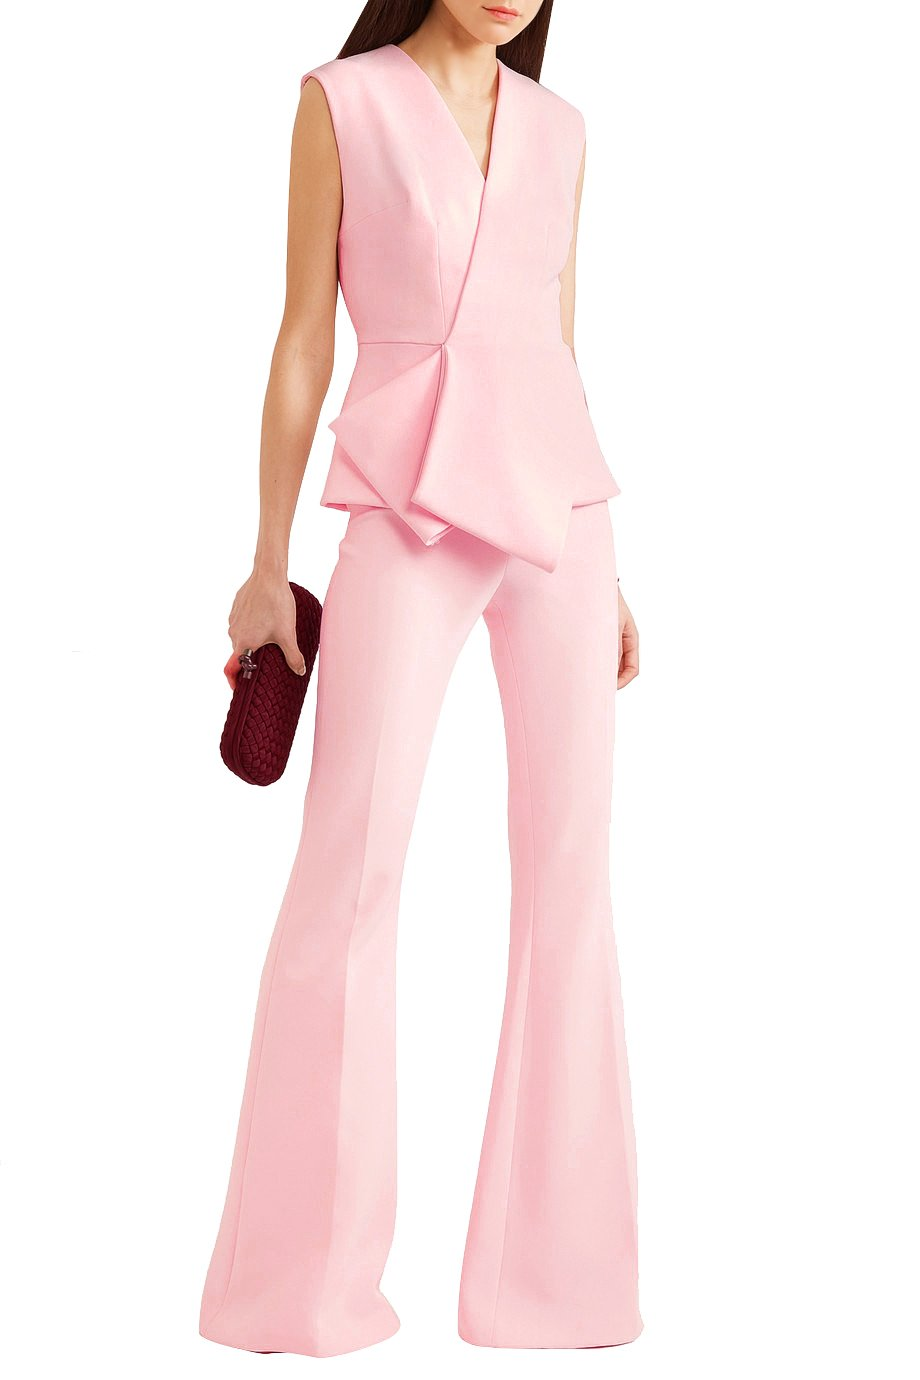 Hego Women's Pink V Neck Sleeveless Modern Suit Blazer Pant 2 Pieces Sets BH5557 (Pink, S)